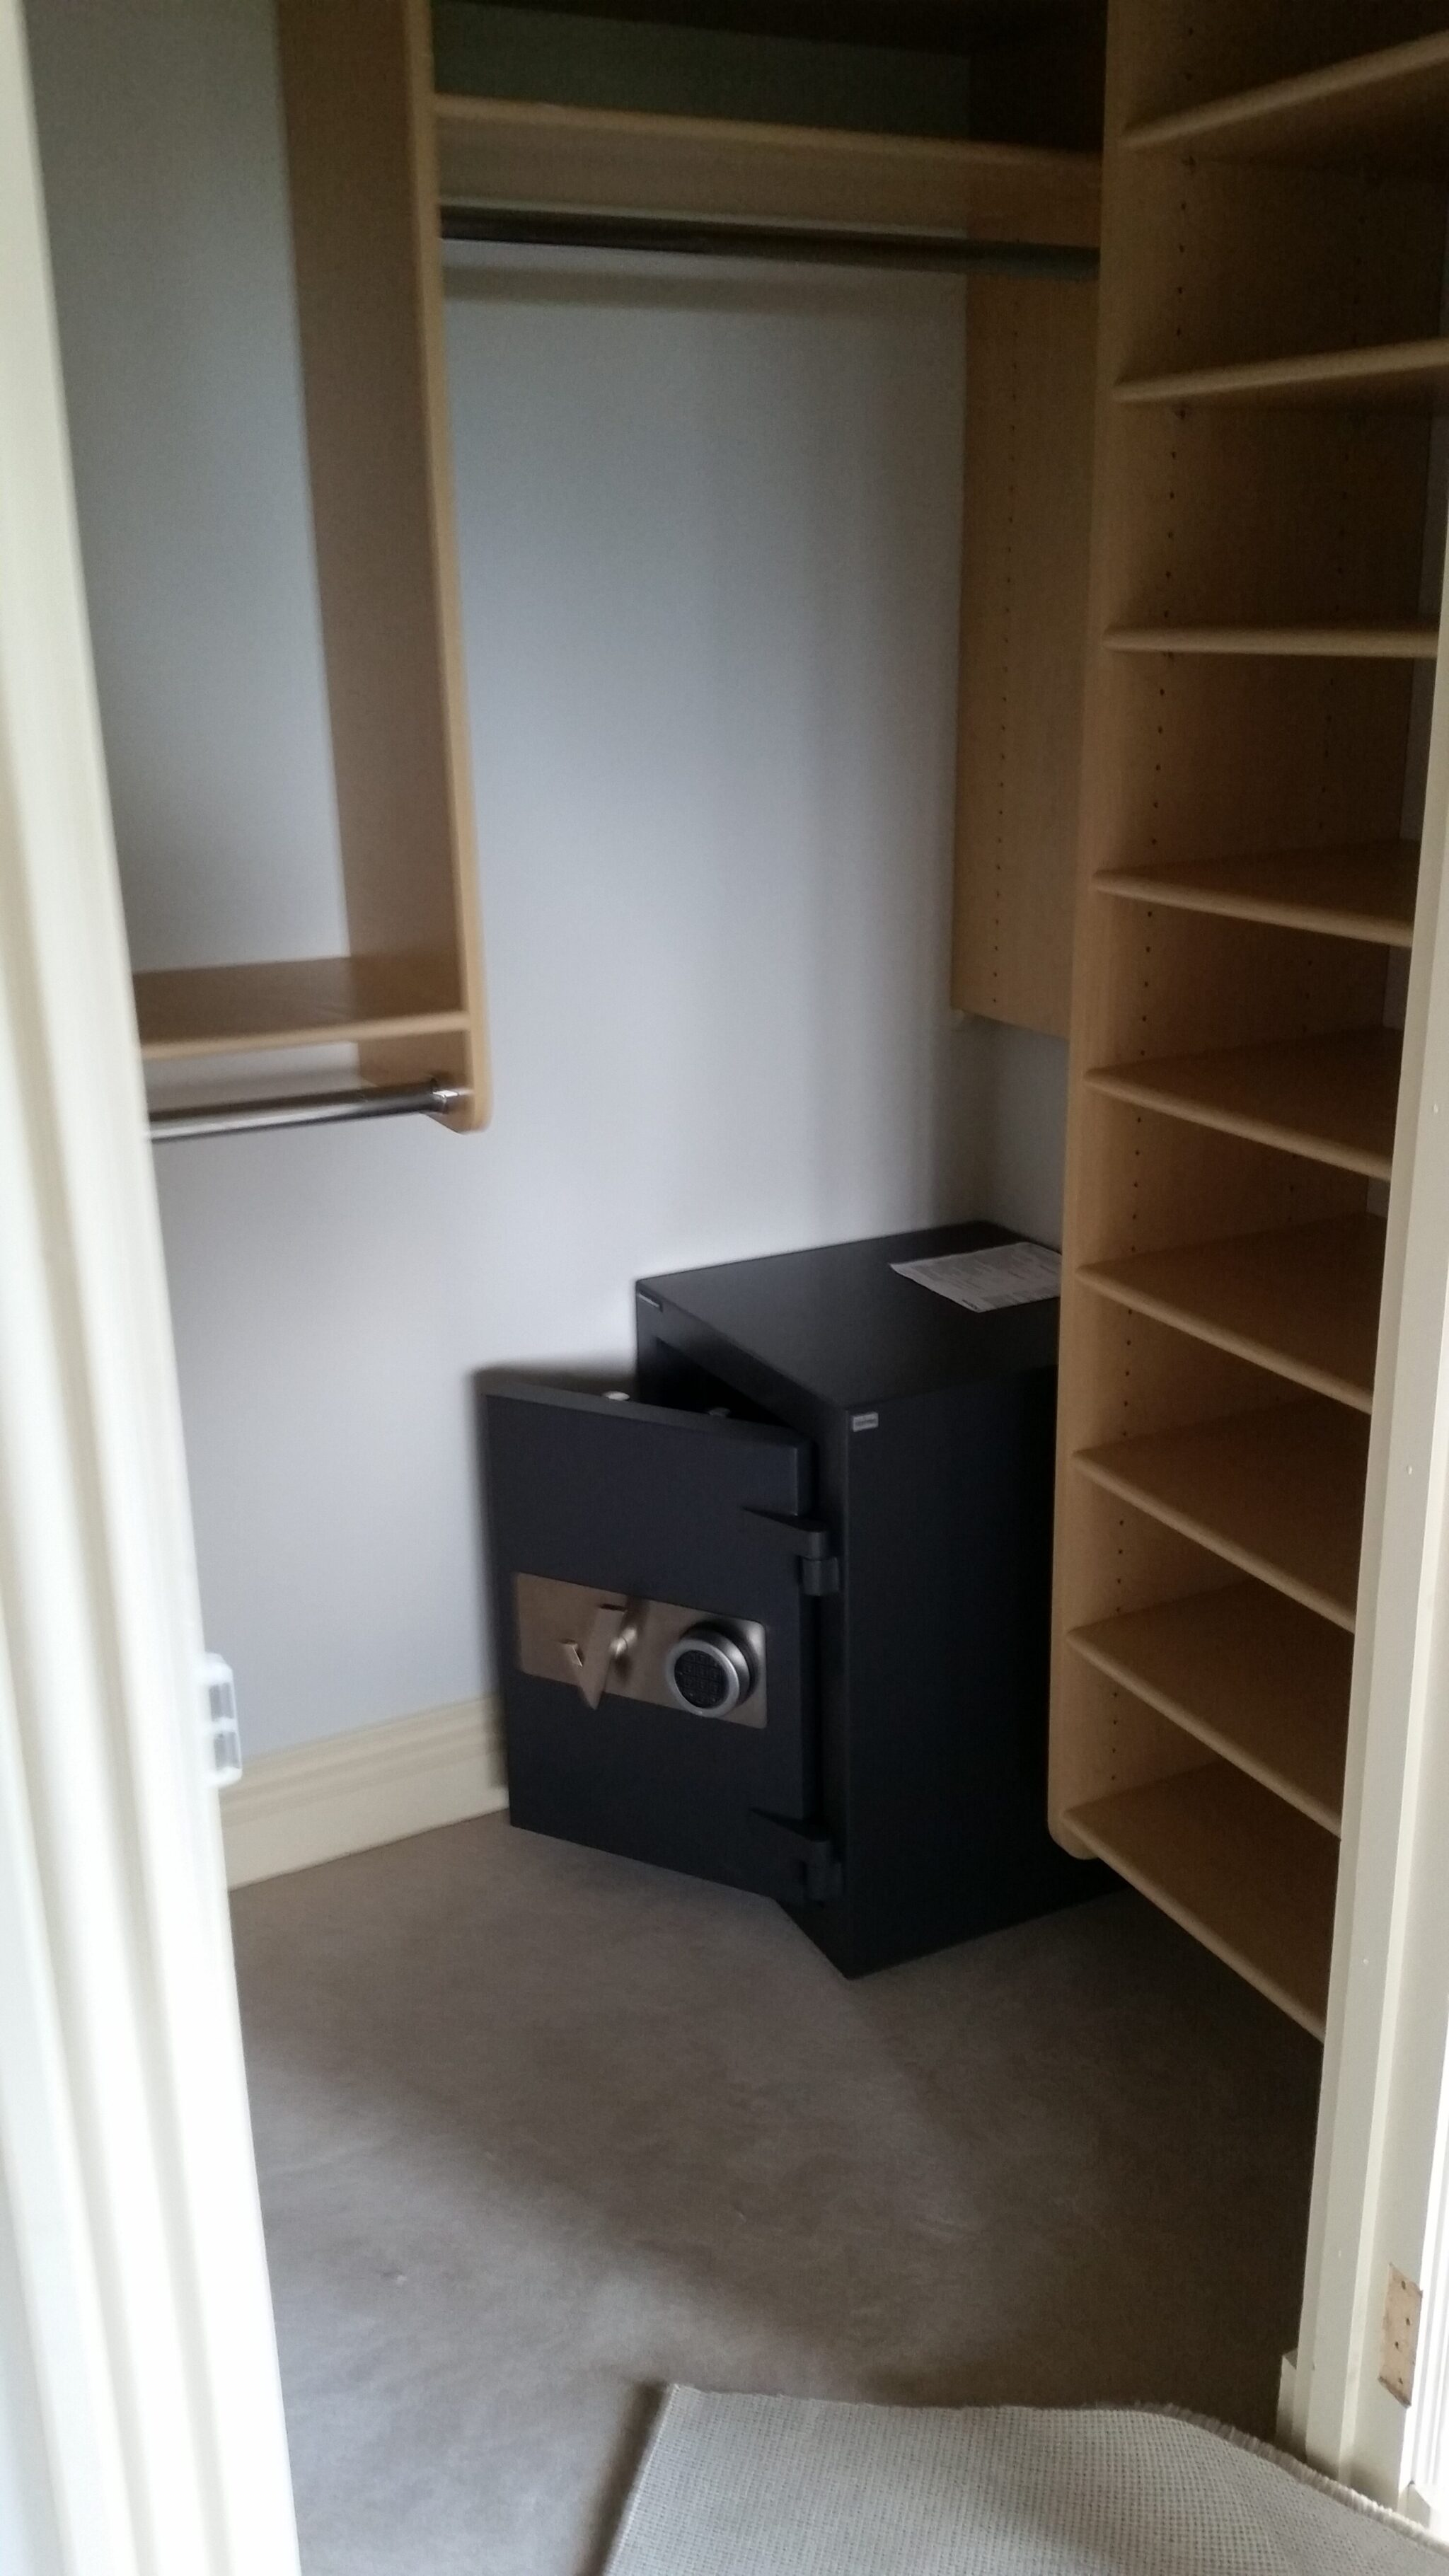 Reposition and installation of safe